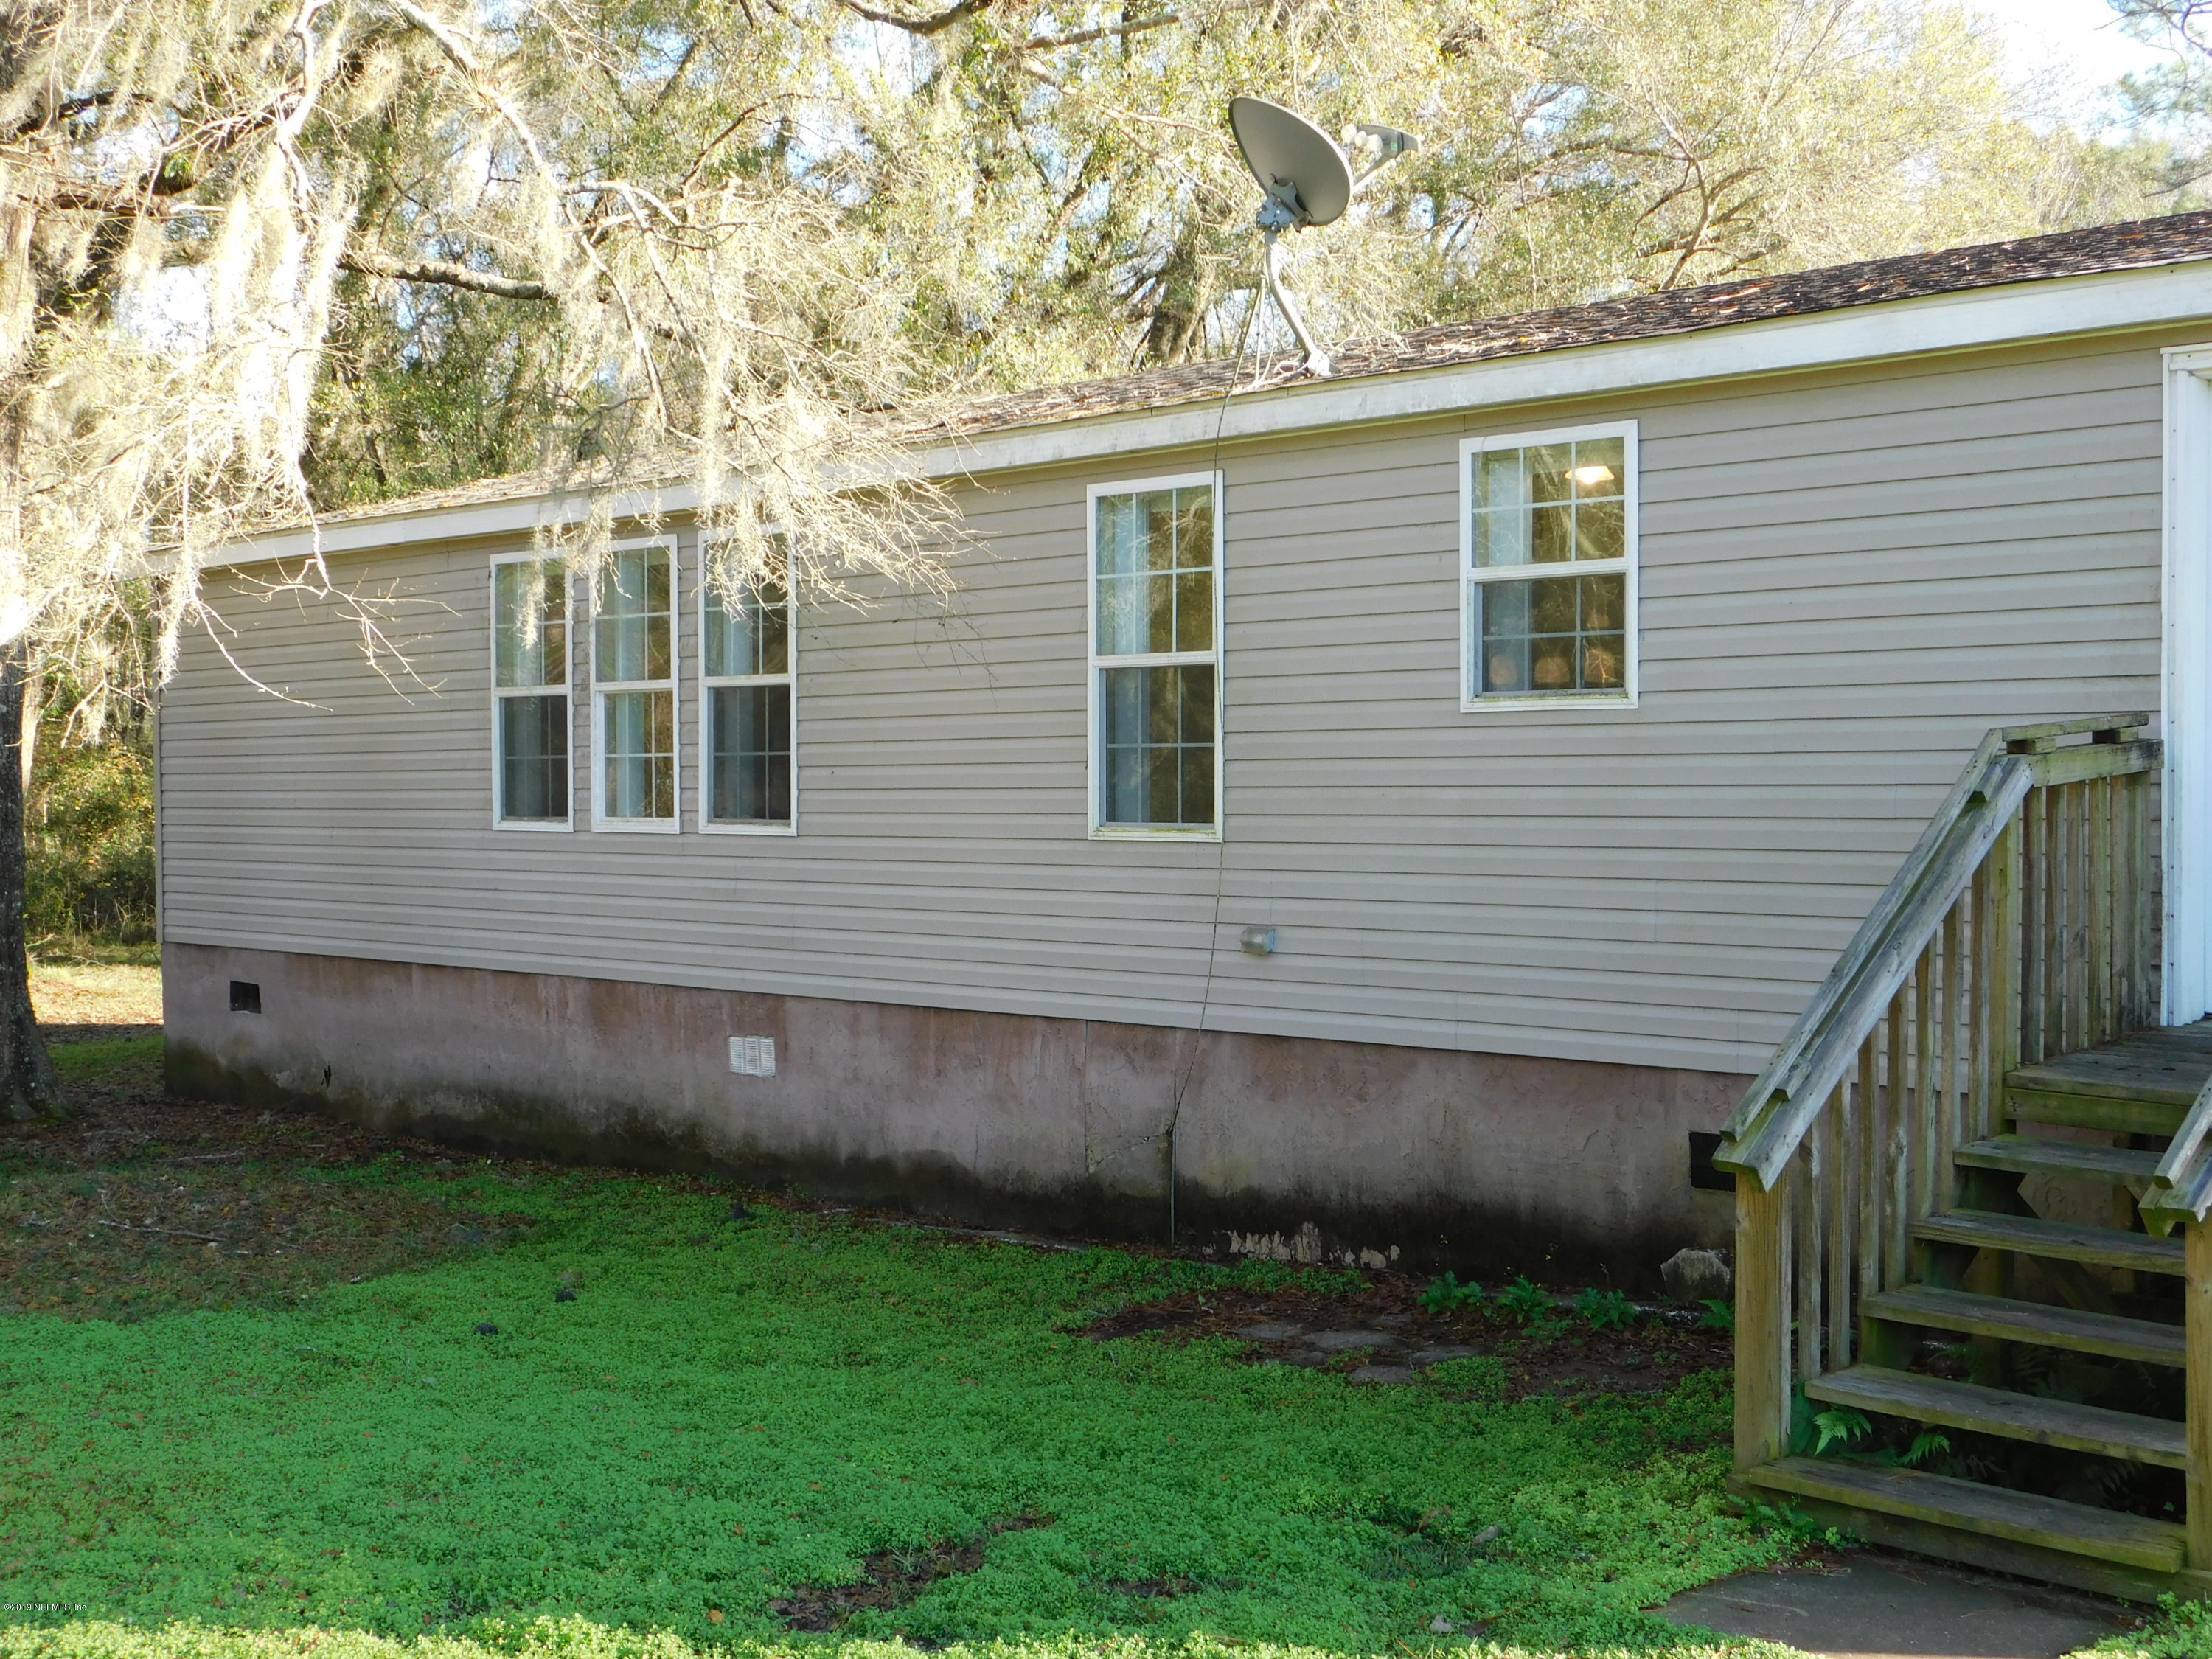 54389 SEAGULL, CALLAHAN, FLORIDA 32011, 4 Bedrooms Bedrooms, ,2 BathroomsBathrooms,Residential - single family,For sale,SEAGULL,974848